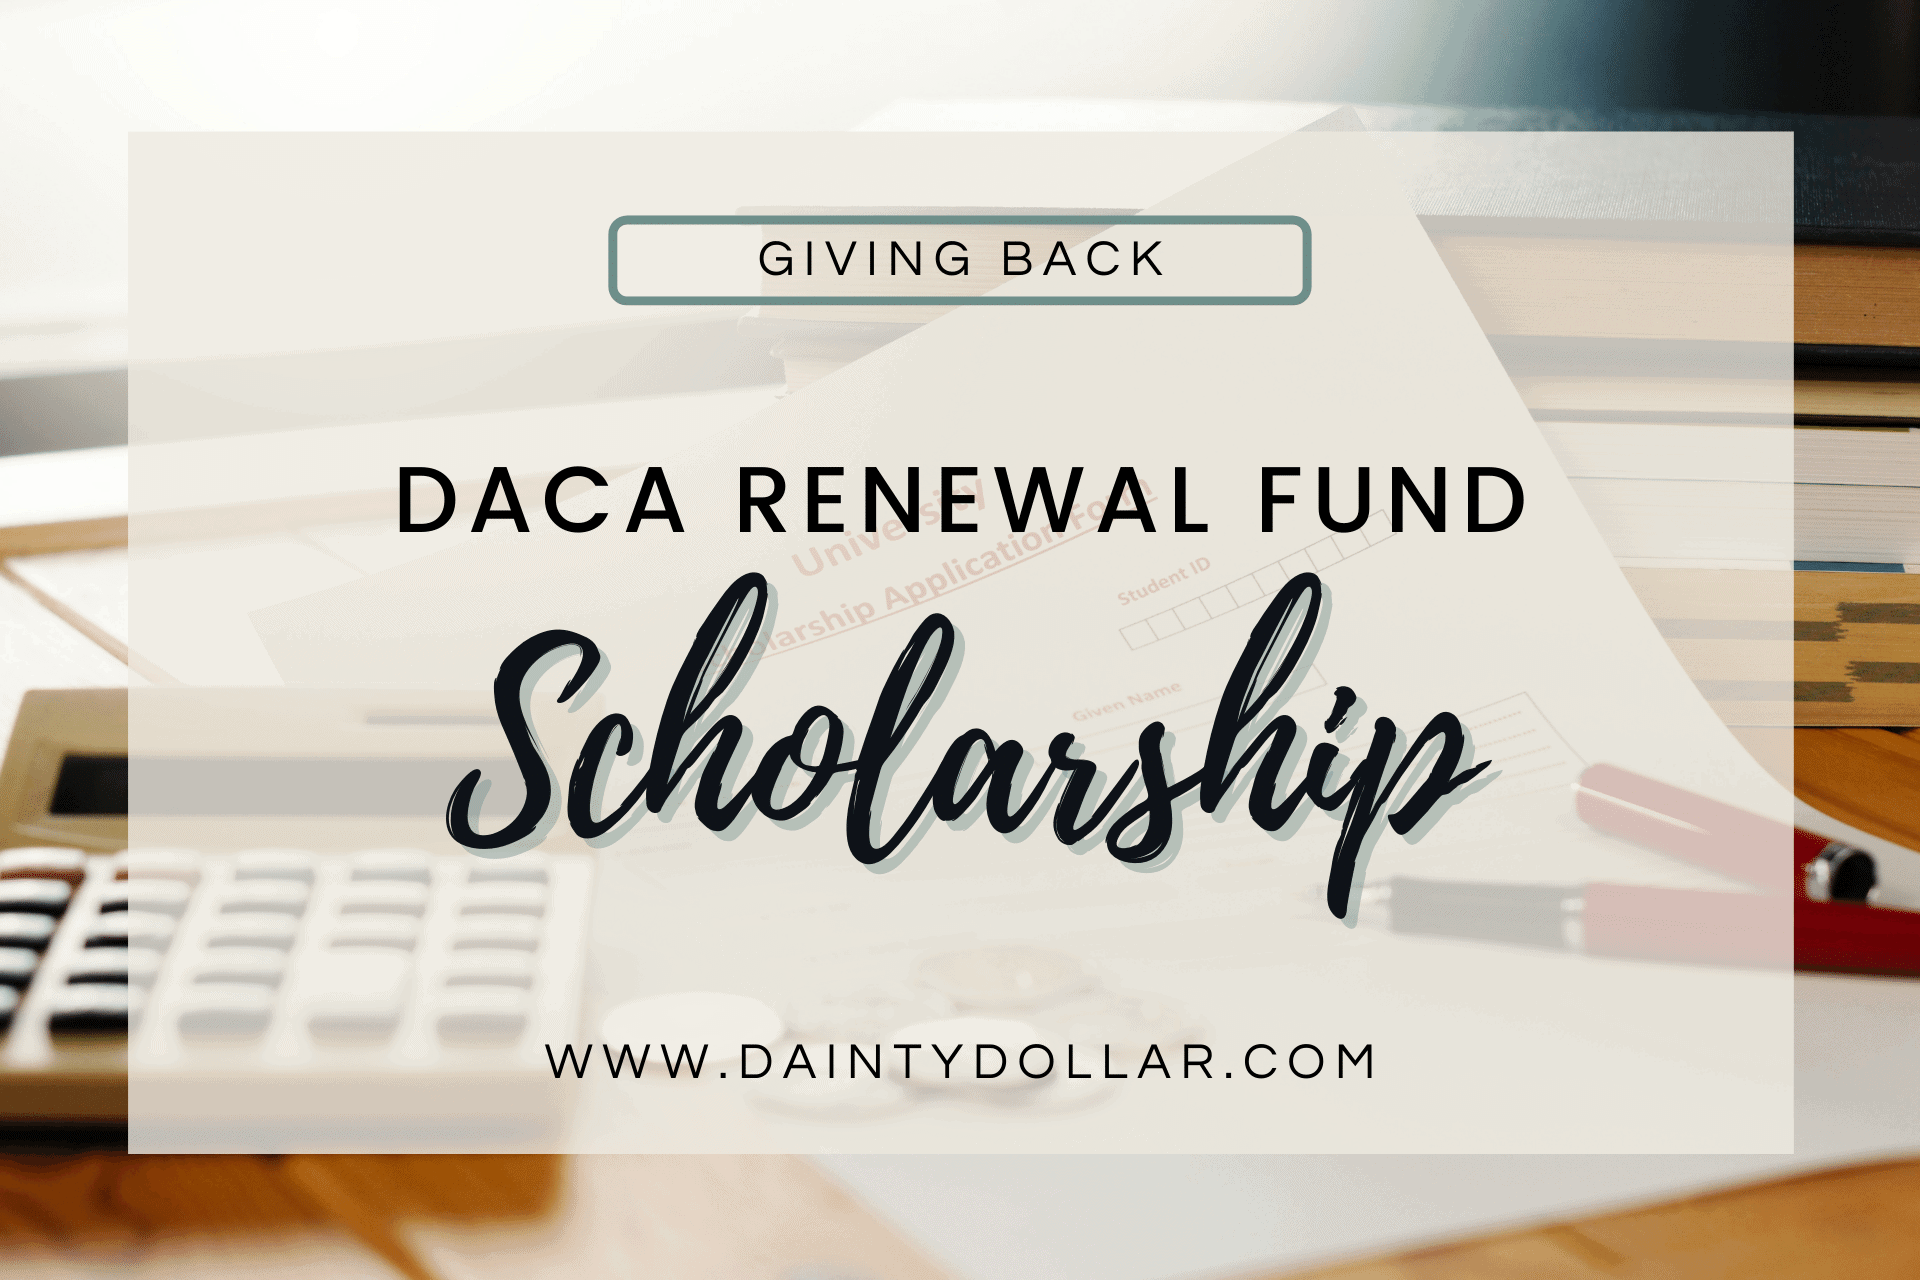 DACA Scholarship - Dainty Dollar Gives Back